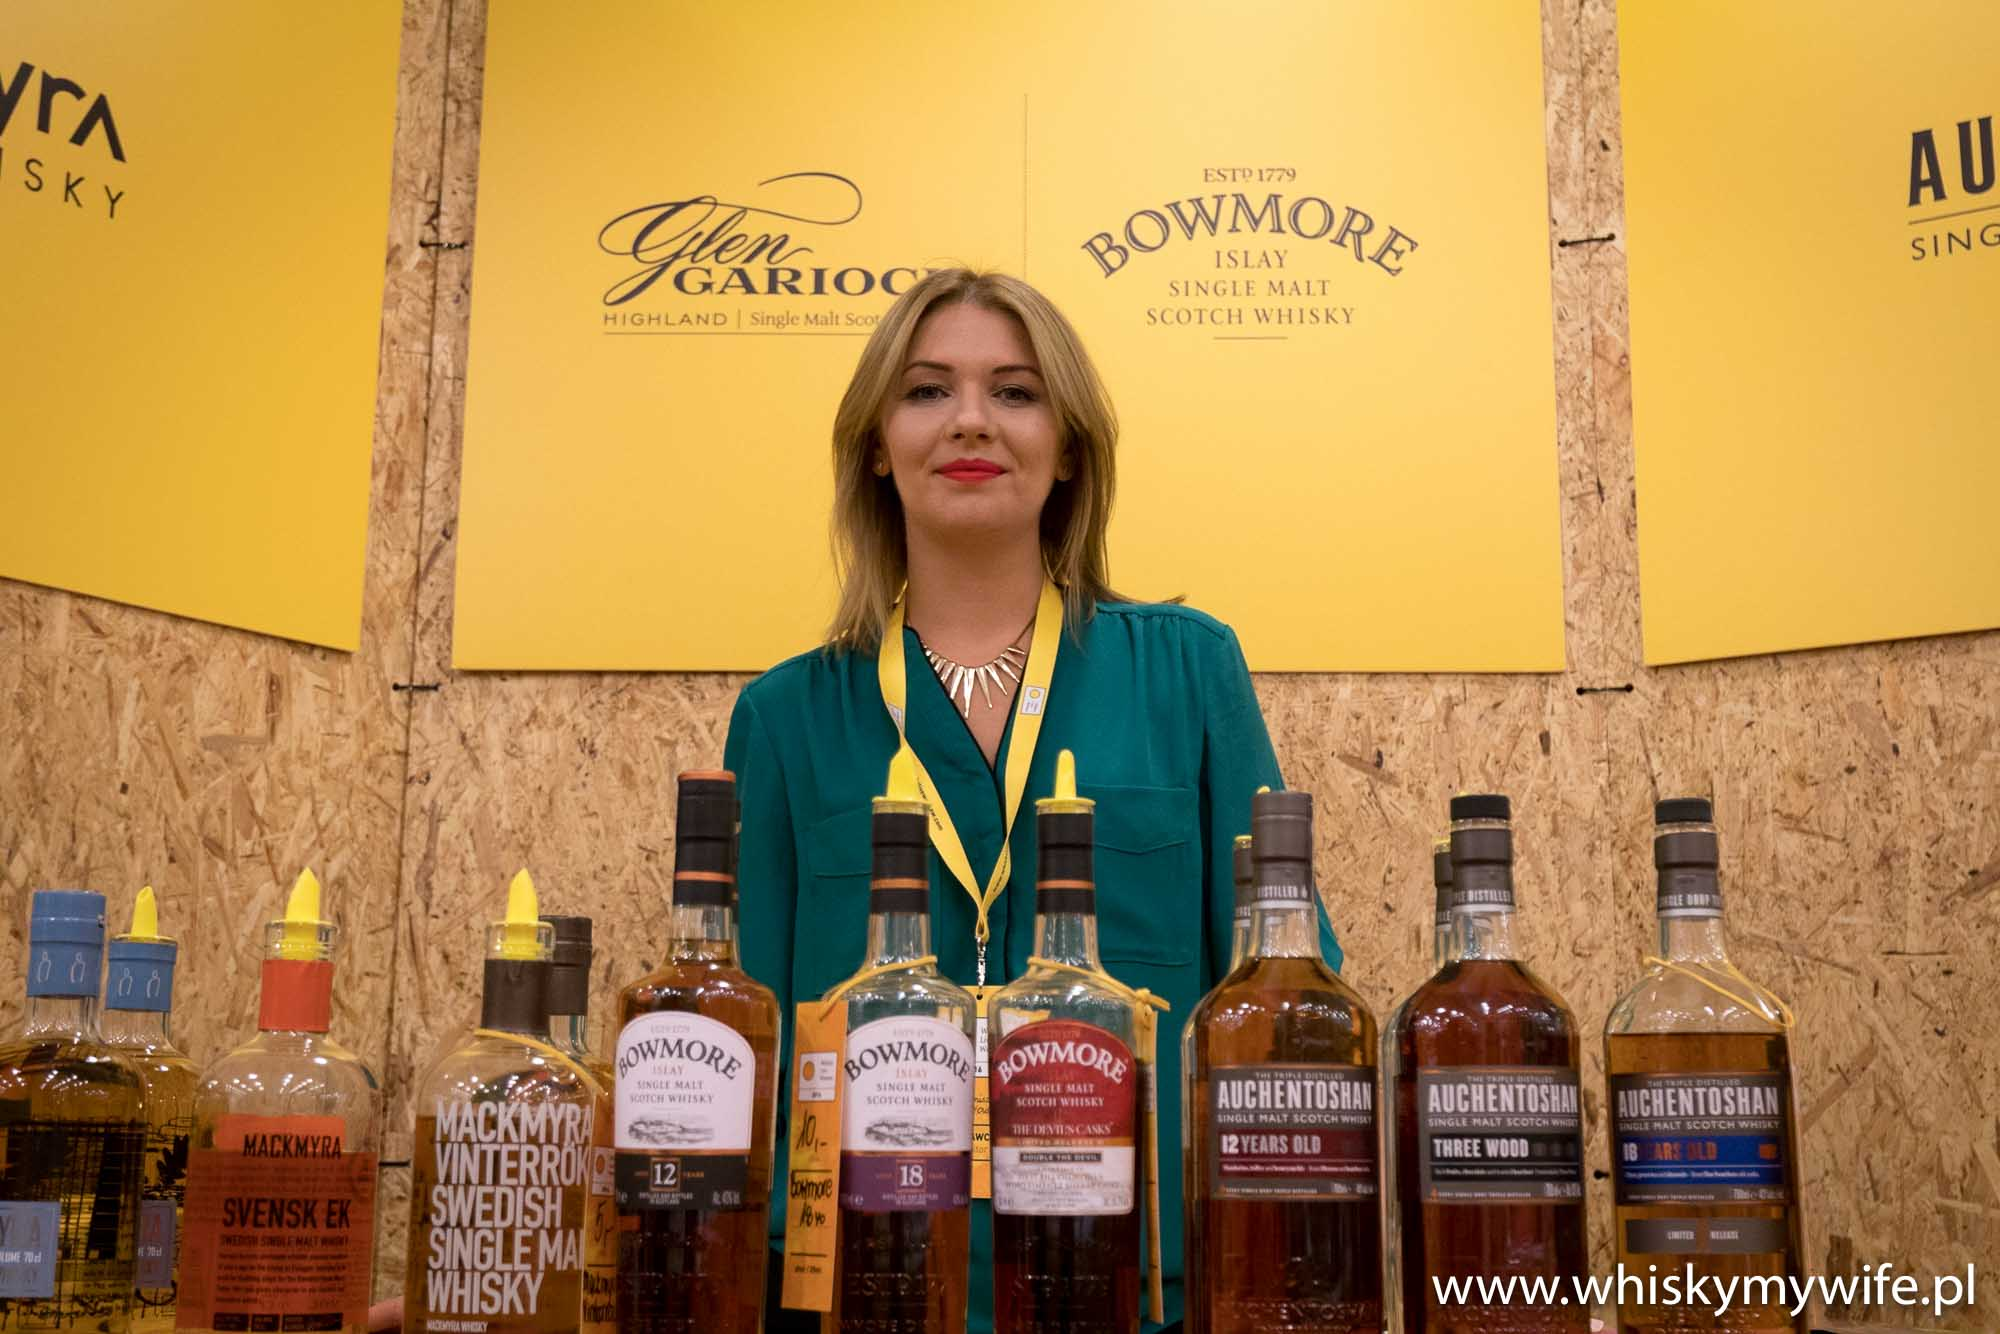 Queen of Bowmore